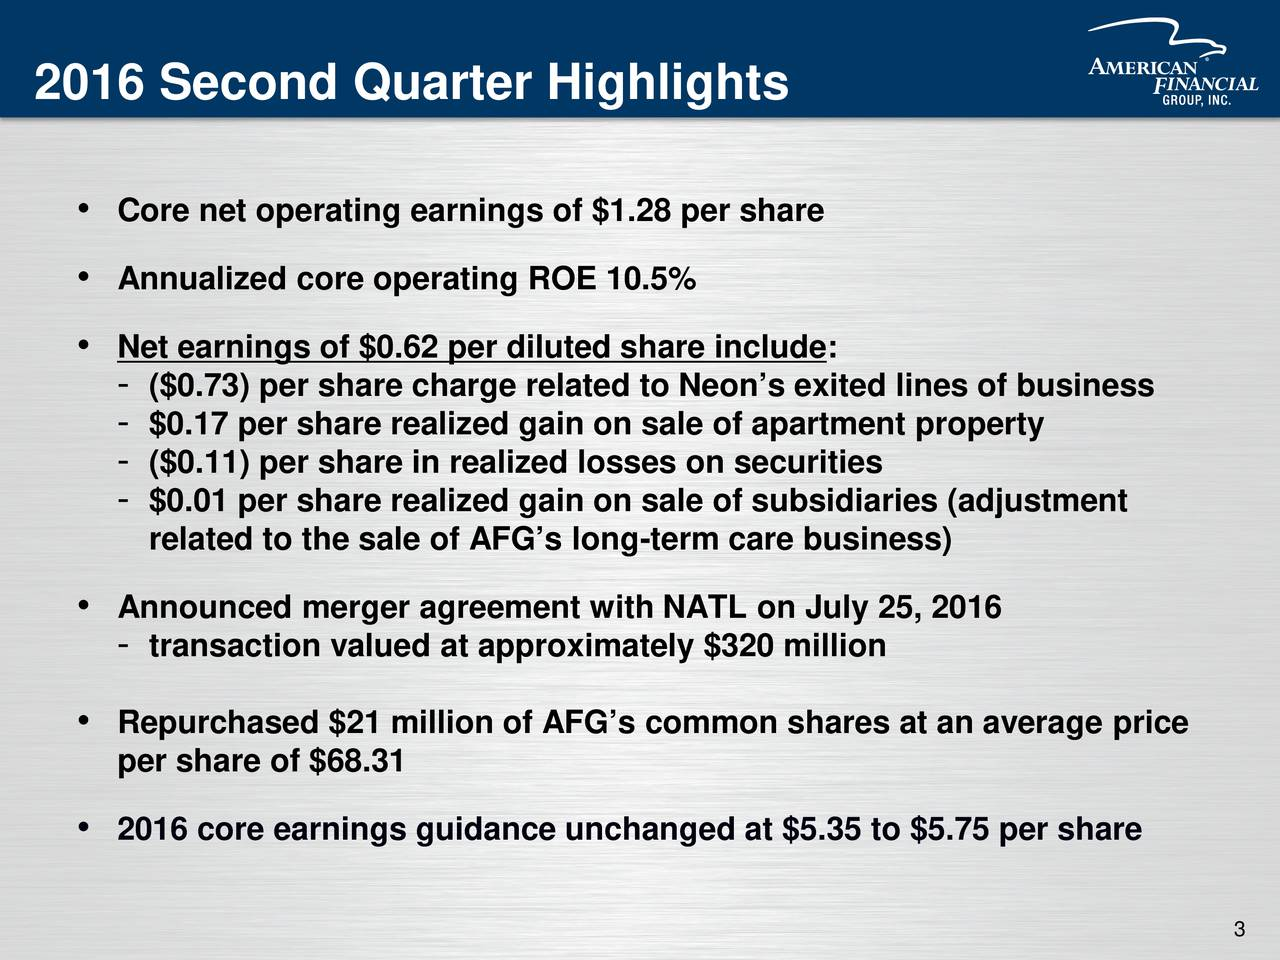 Core net operating earnings of $1.28 per share Annualized core operating ROE 10.5% Net earnings of $0.62 per diluted share include: - ($0.73) per share charge related to Neons exited lines of business - $0.17 per share realized gain on sale of apartment property - ($0.11) per share in realized losses on securities - $0.01 per share realized gain on sale of subsidiaries (adjustment related to the sale of AFGs long-term care business) Announced merger agreement with NATL on July 25, 2016 - transaction valued at approximately $320 million Repurchased $21 million of AFGs common shares at an average price per share of $68.31 2016 core earnings guidance unchanged at$5.35 to $5.75 per share 3